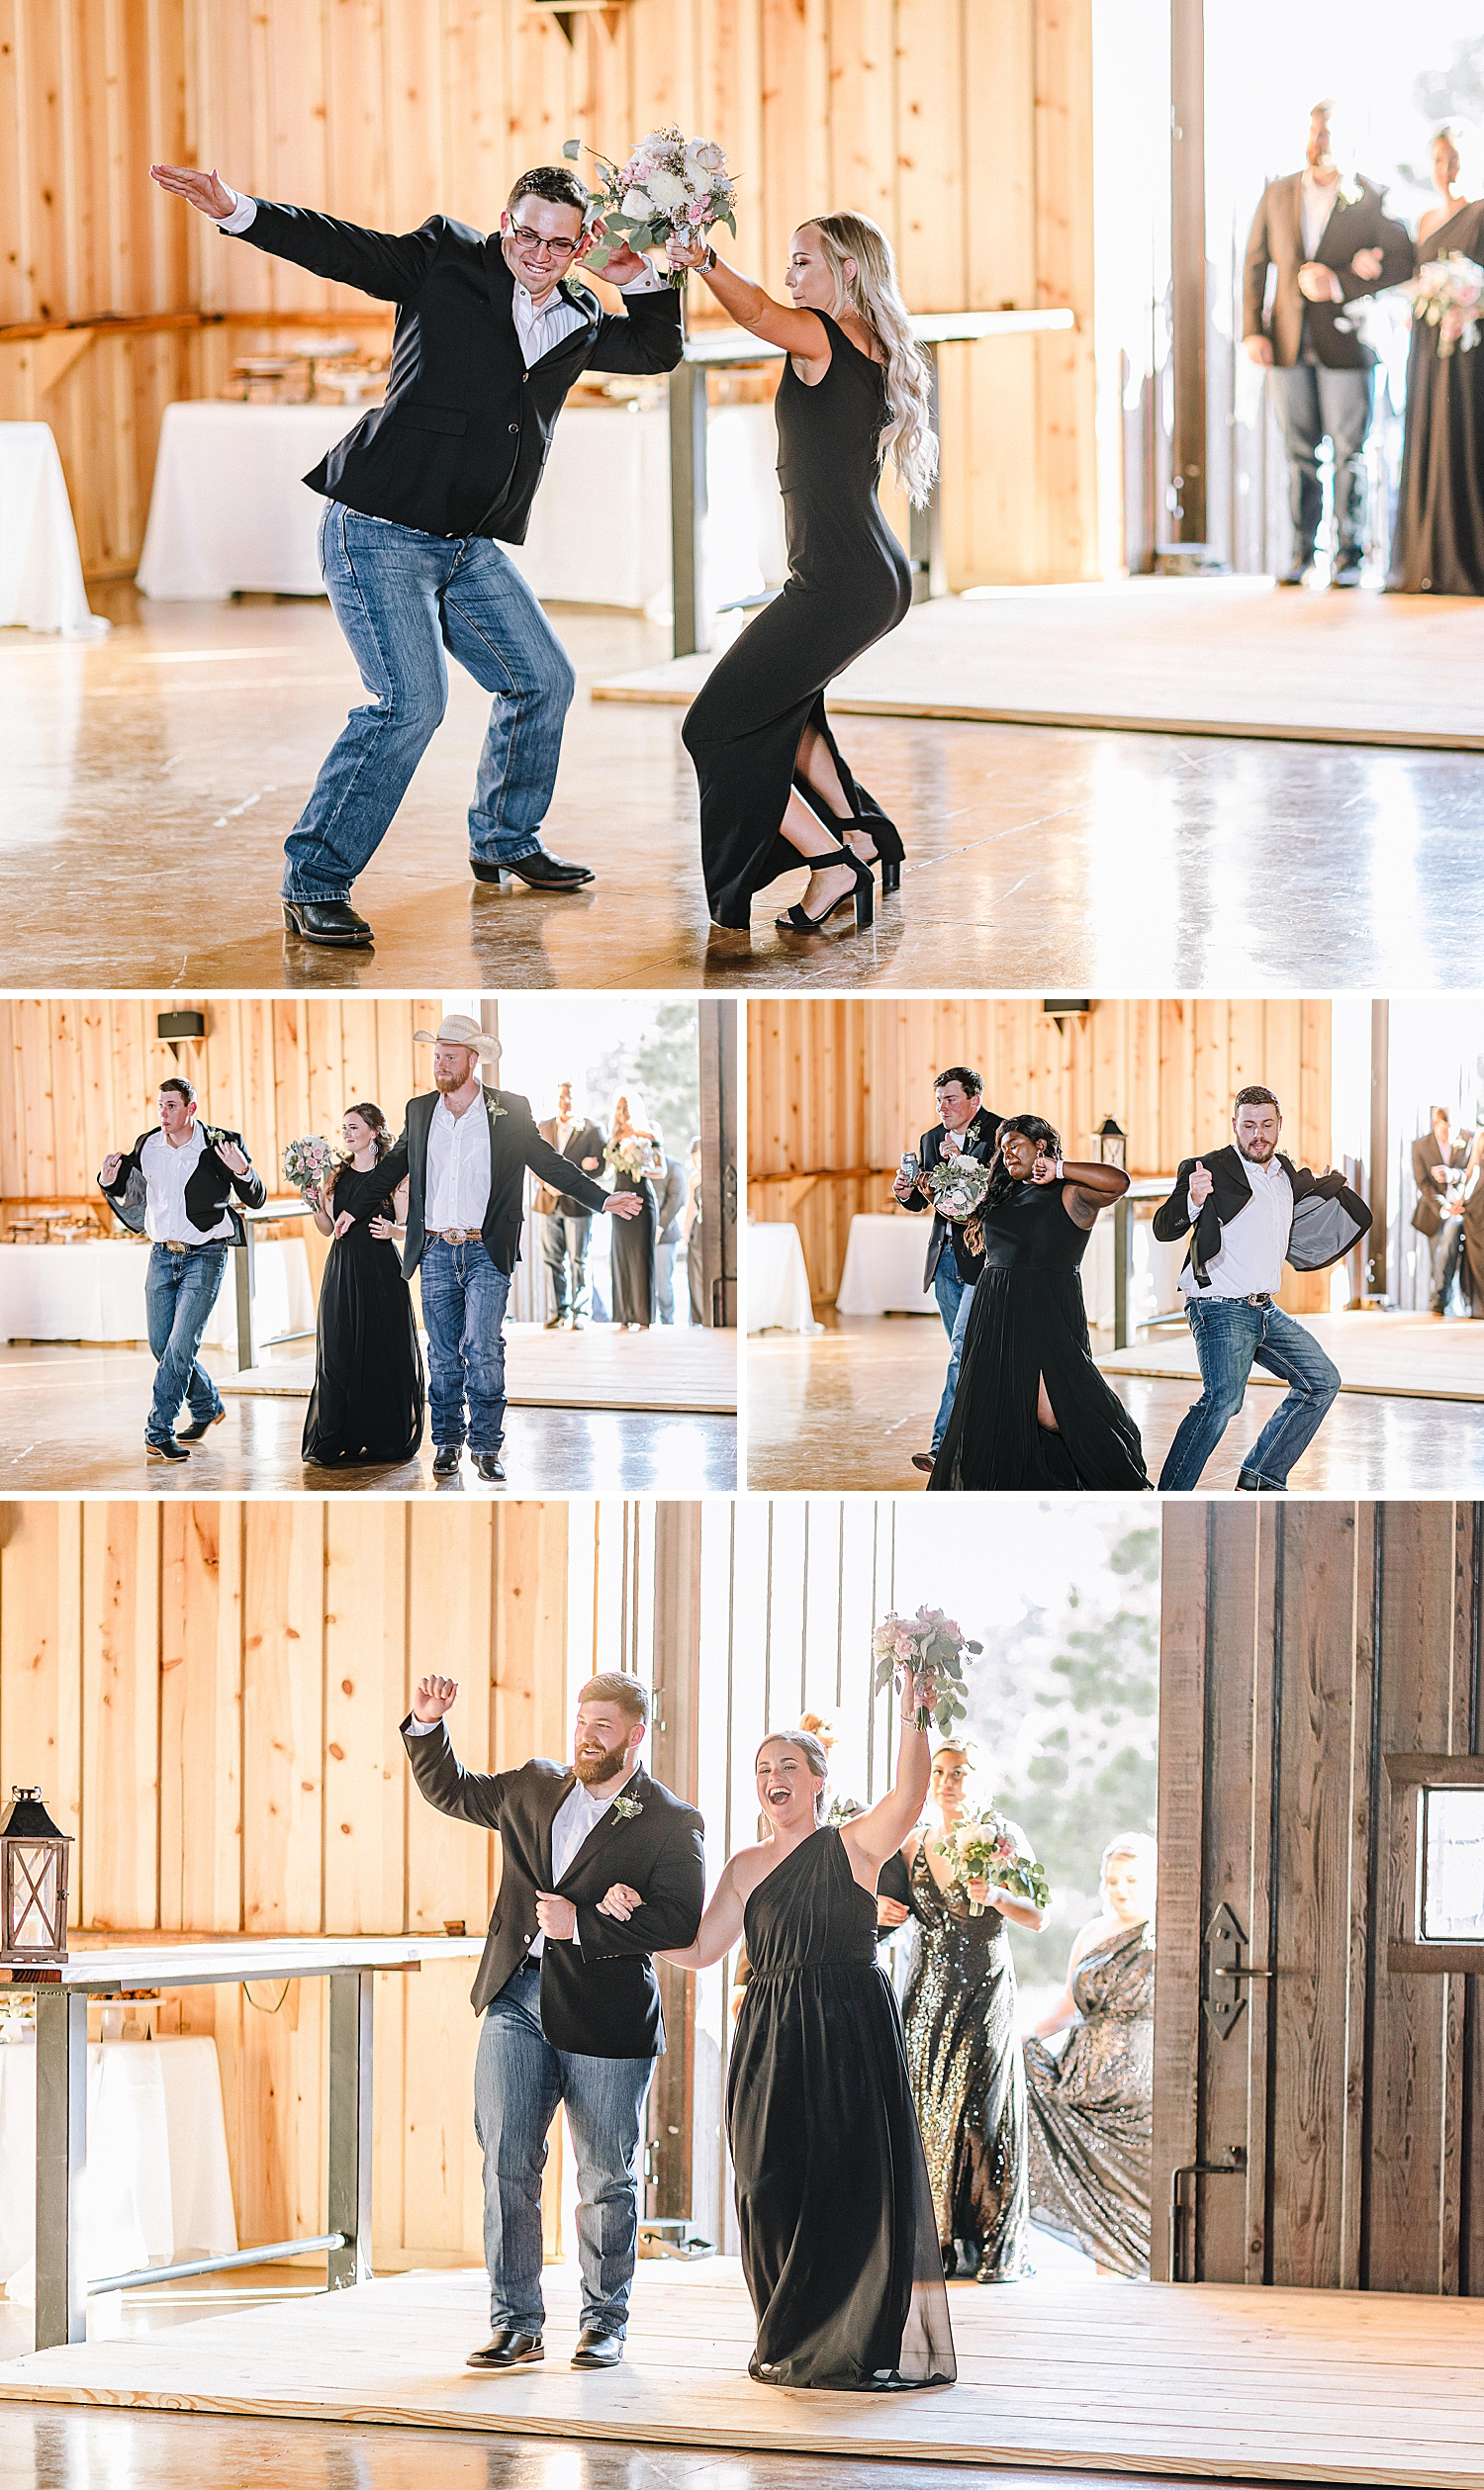 Rackler-Ranch-LaVernia-Texas-Wedding-Carly-Barton-Photography_0111.jpg